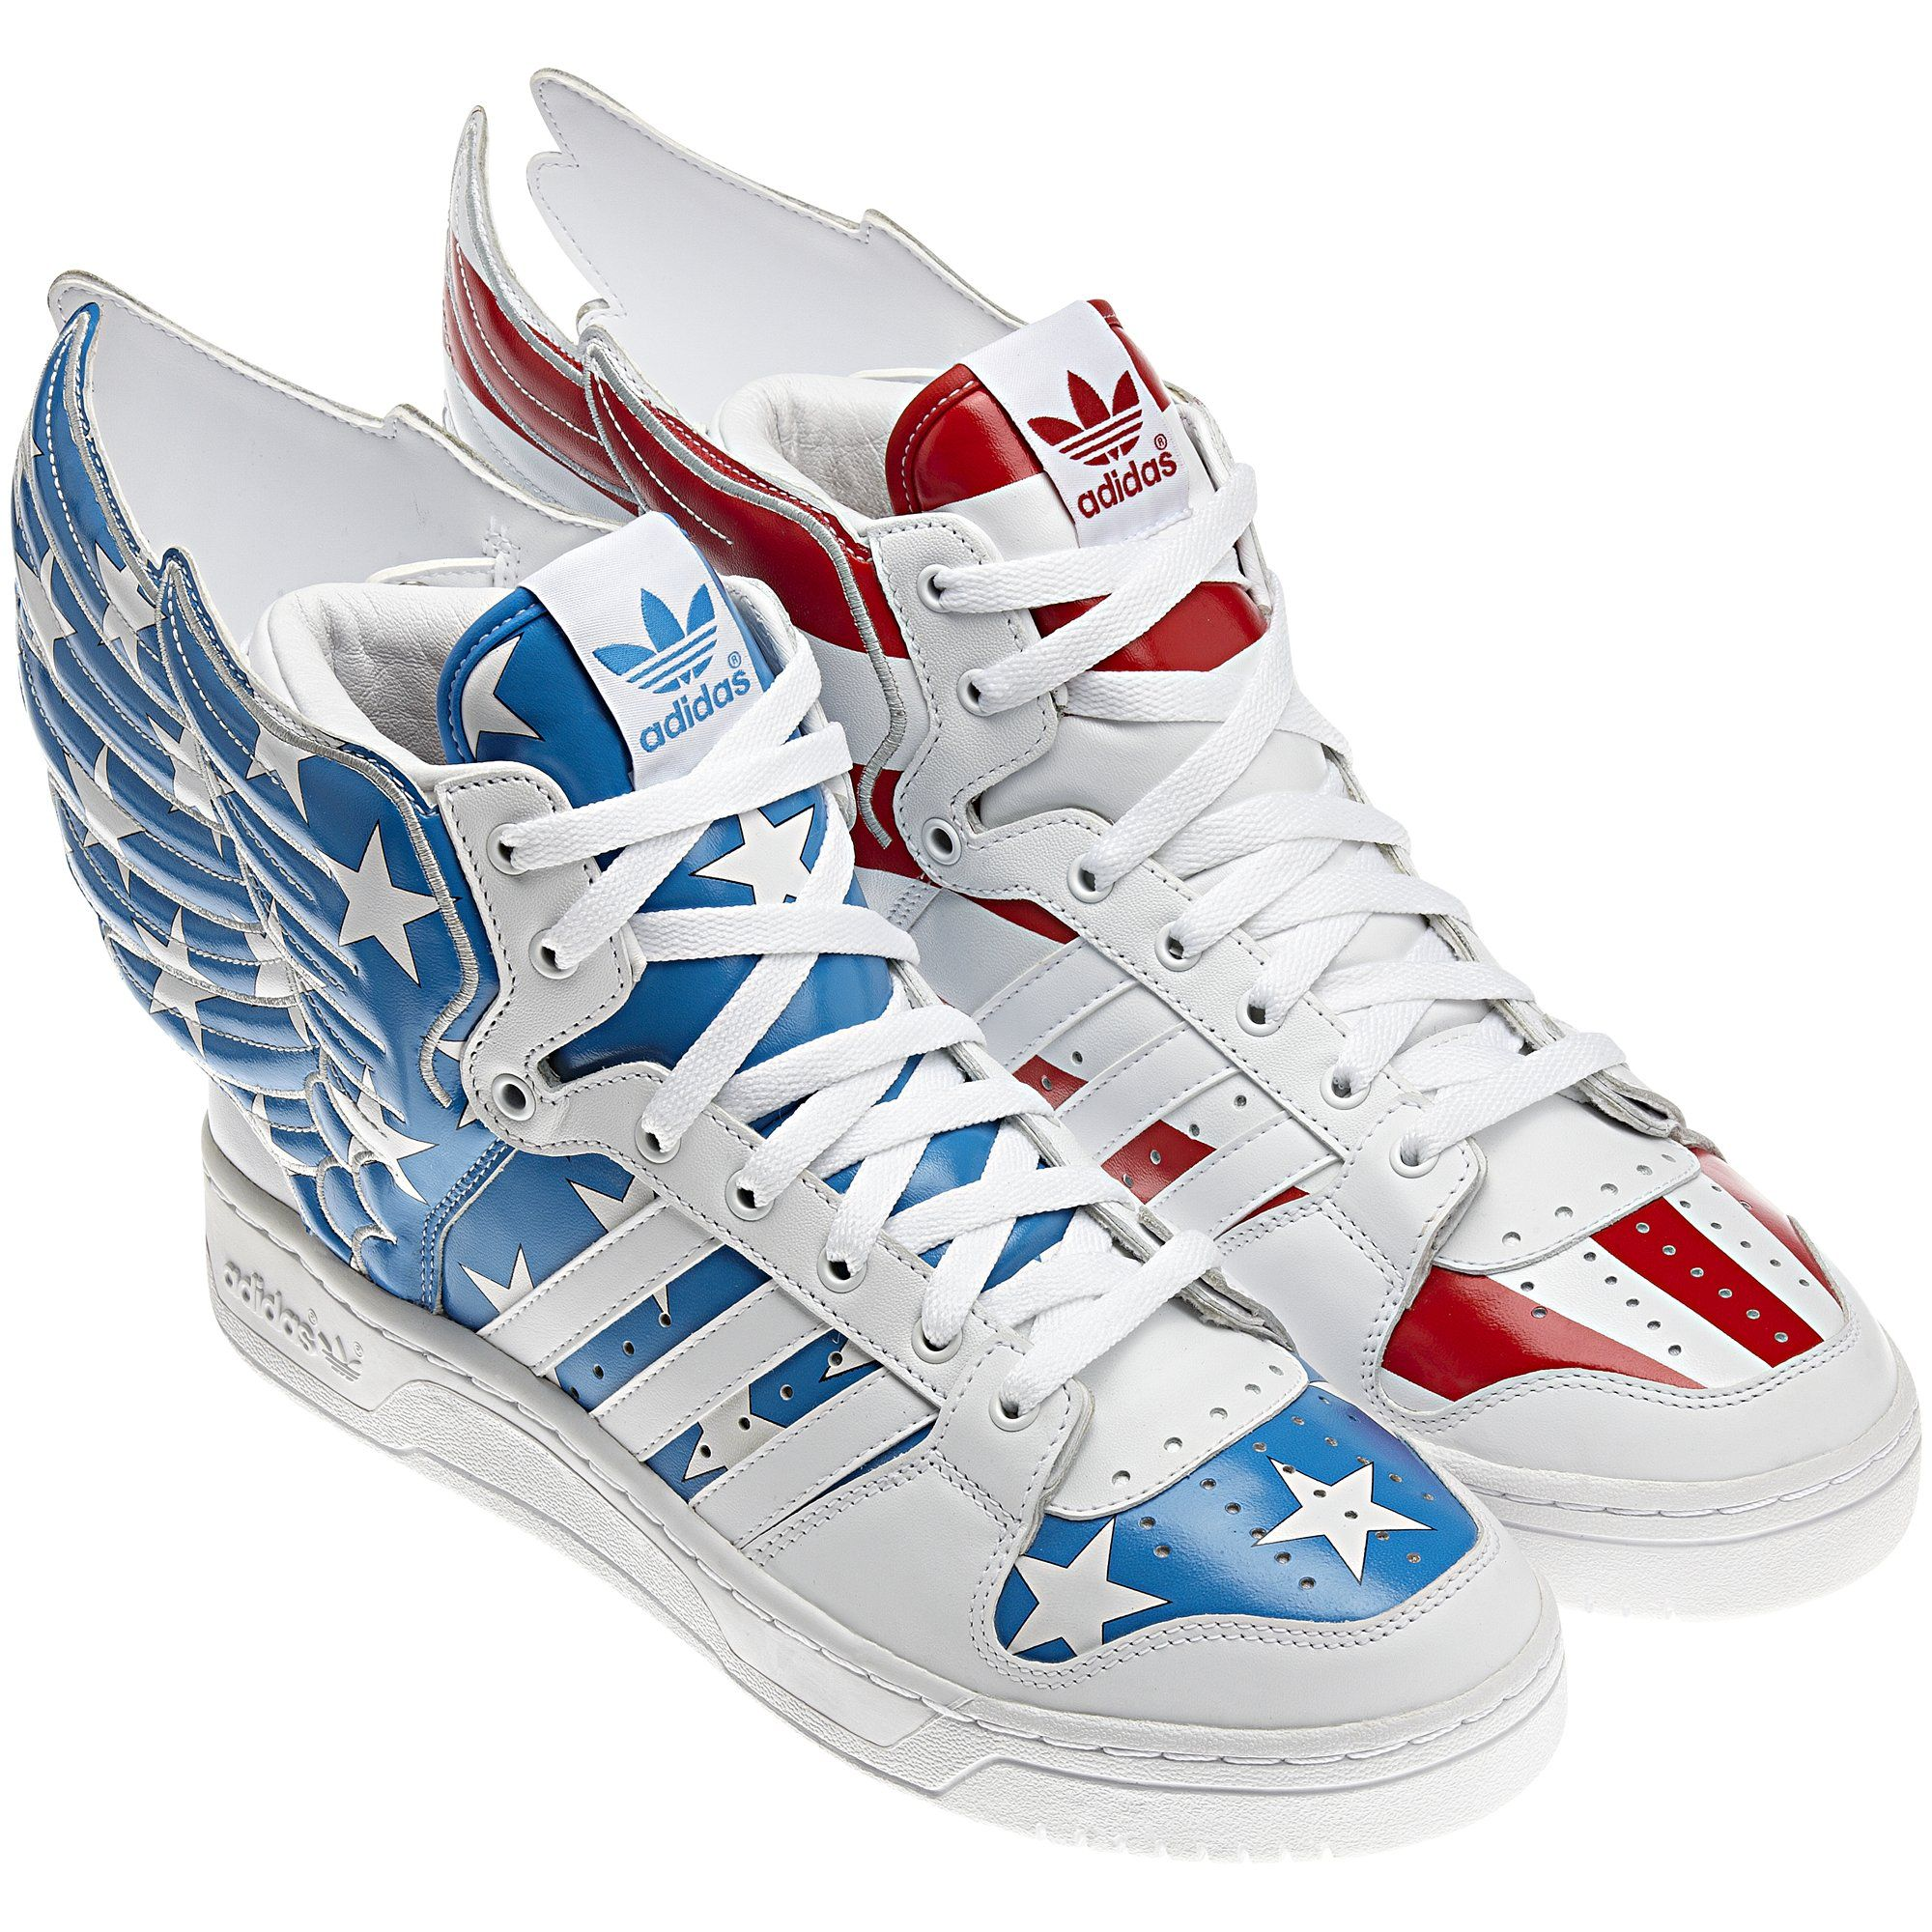 meet 68de3 bb192 Adidas Jeremy Scott Wings - Capt. America shoes